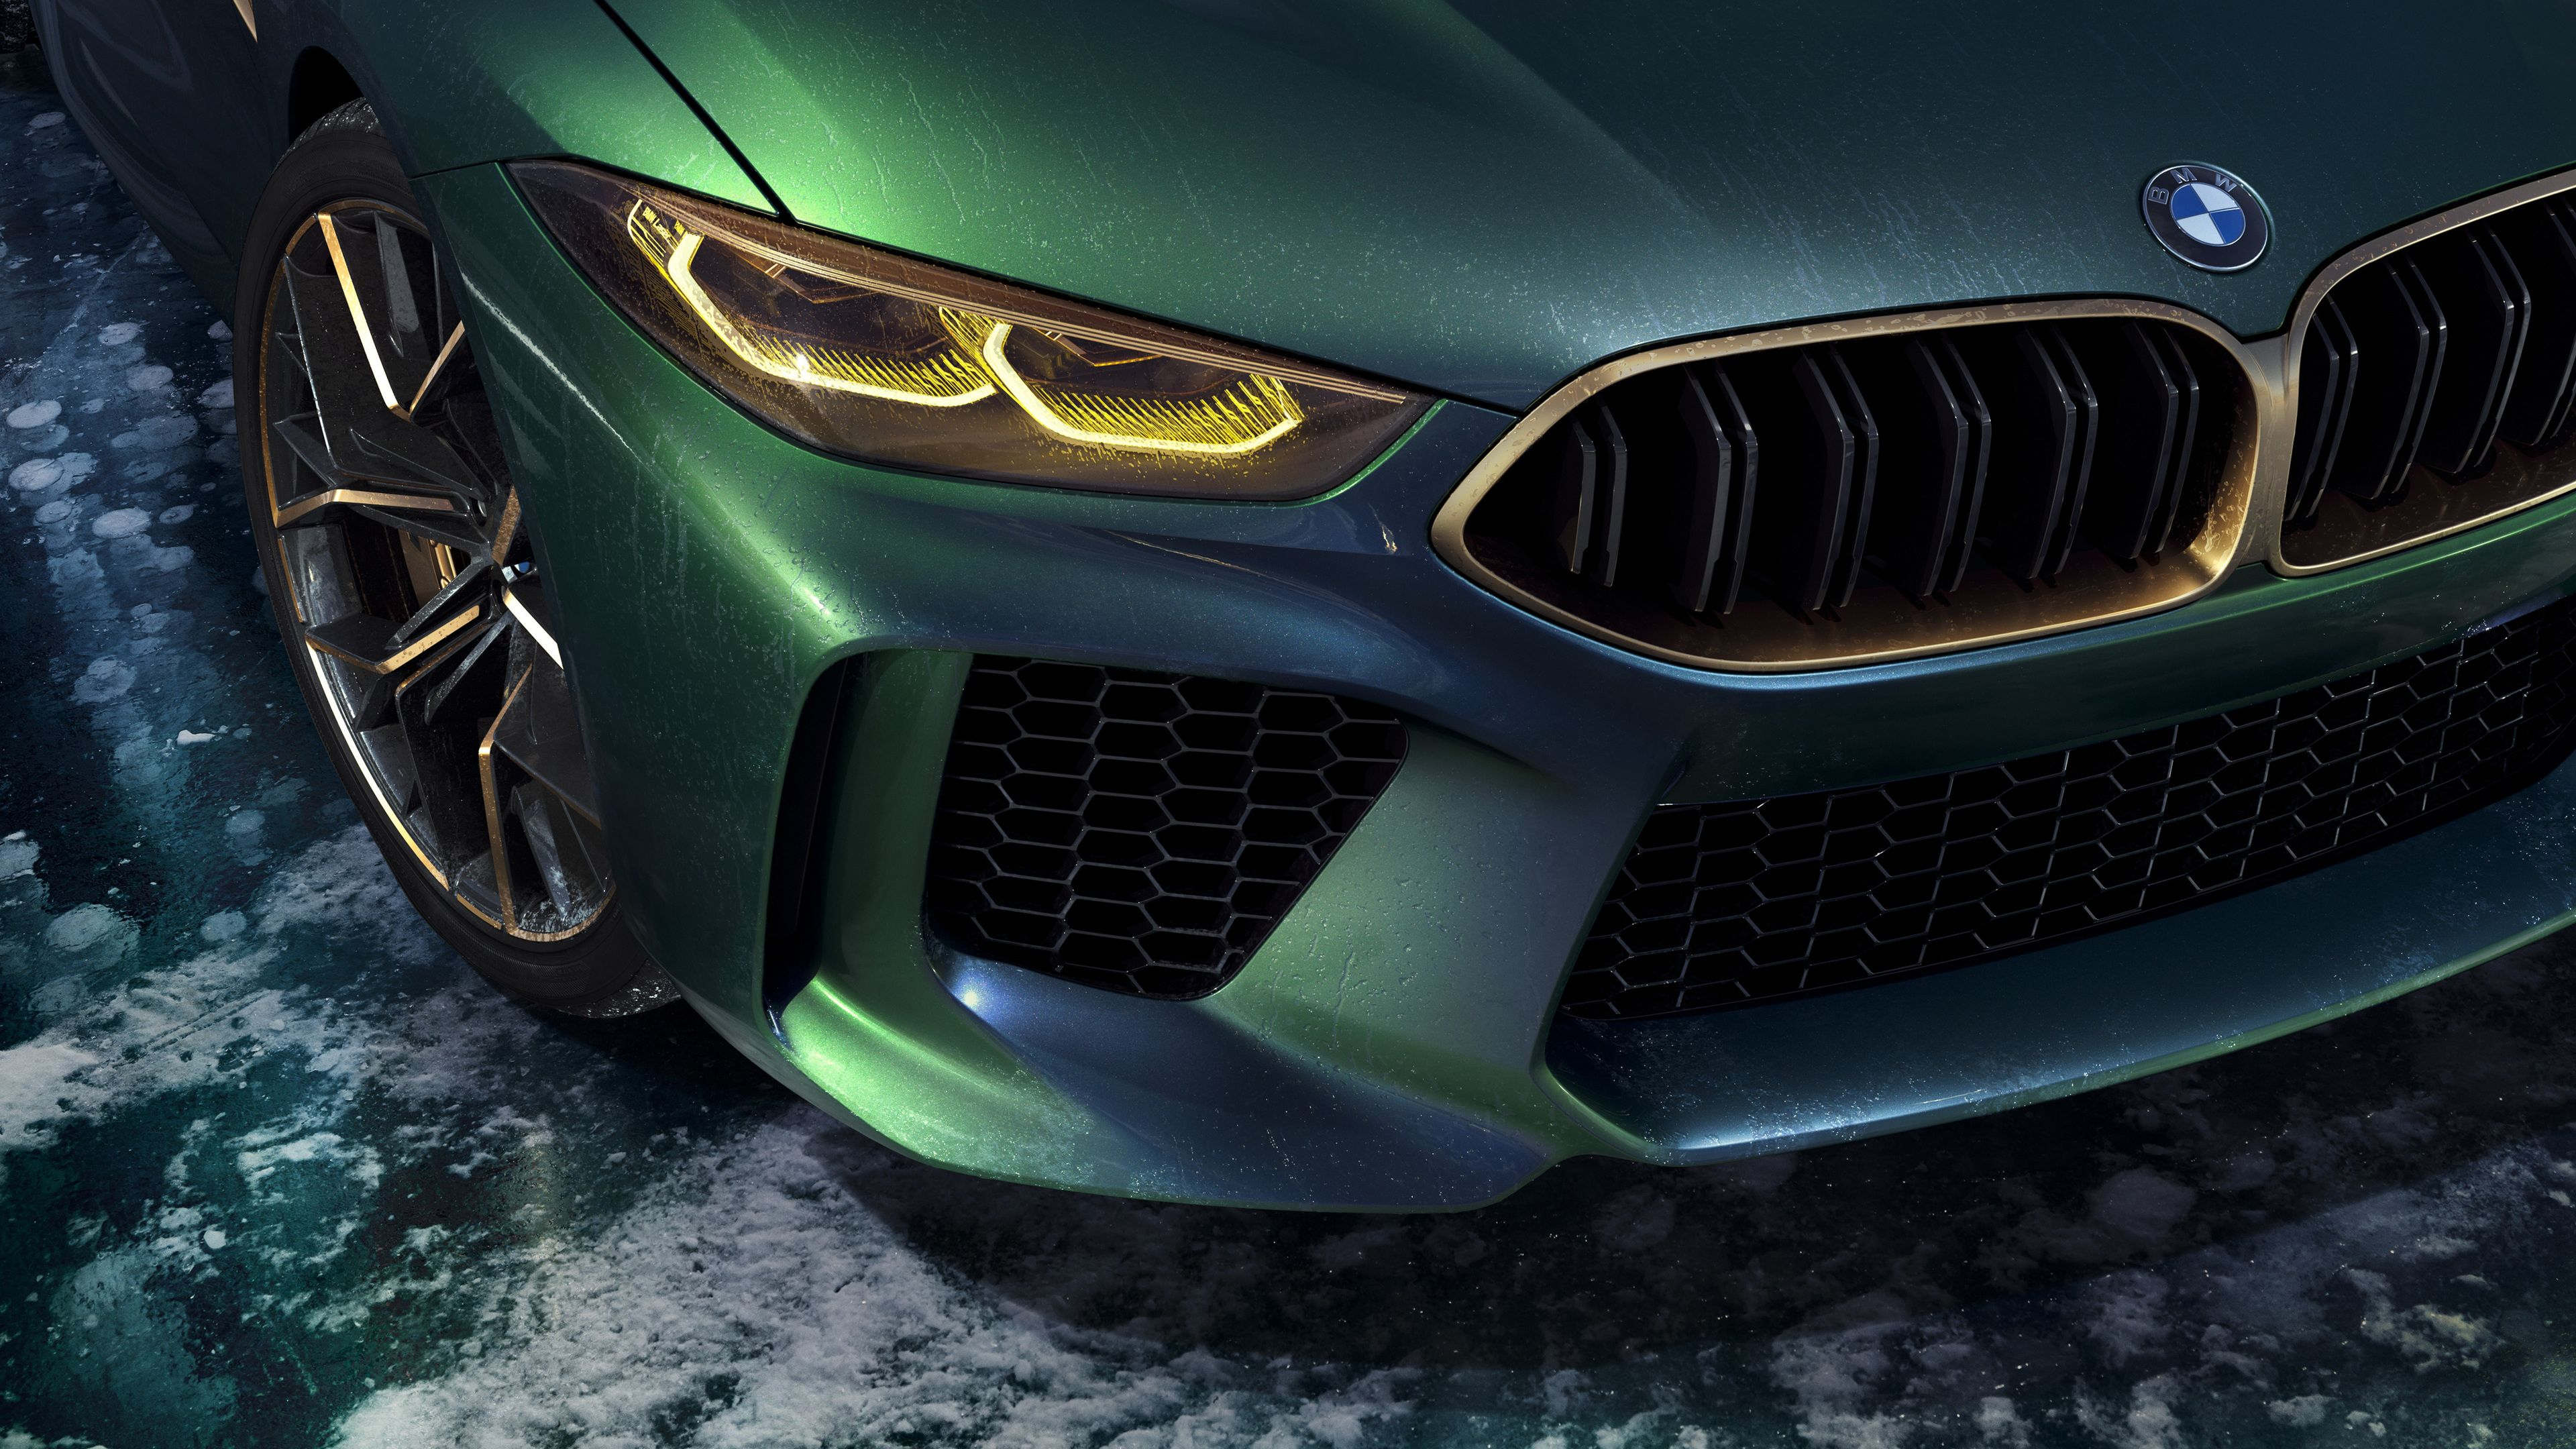 Bmw Concept M8 Gran Coupe Headlights hd-wallpapers, concept cars wallpapers, car…